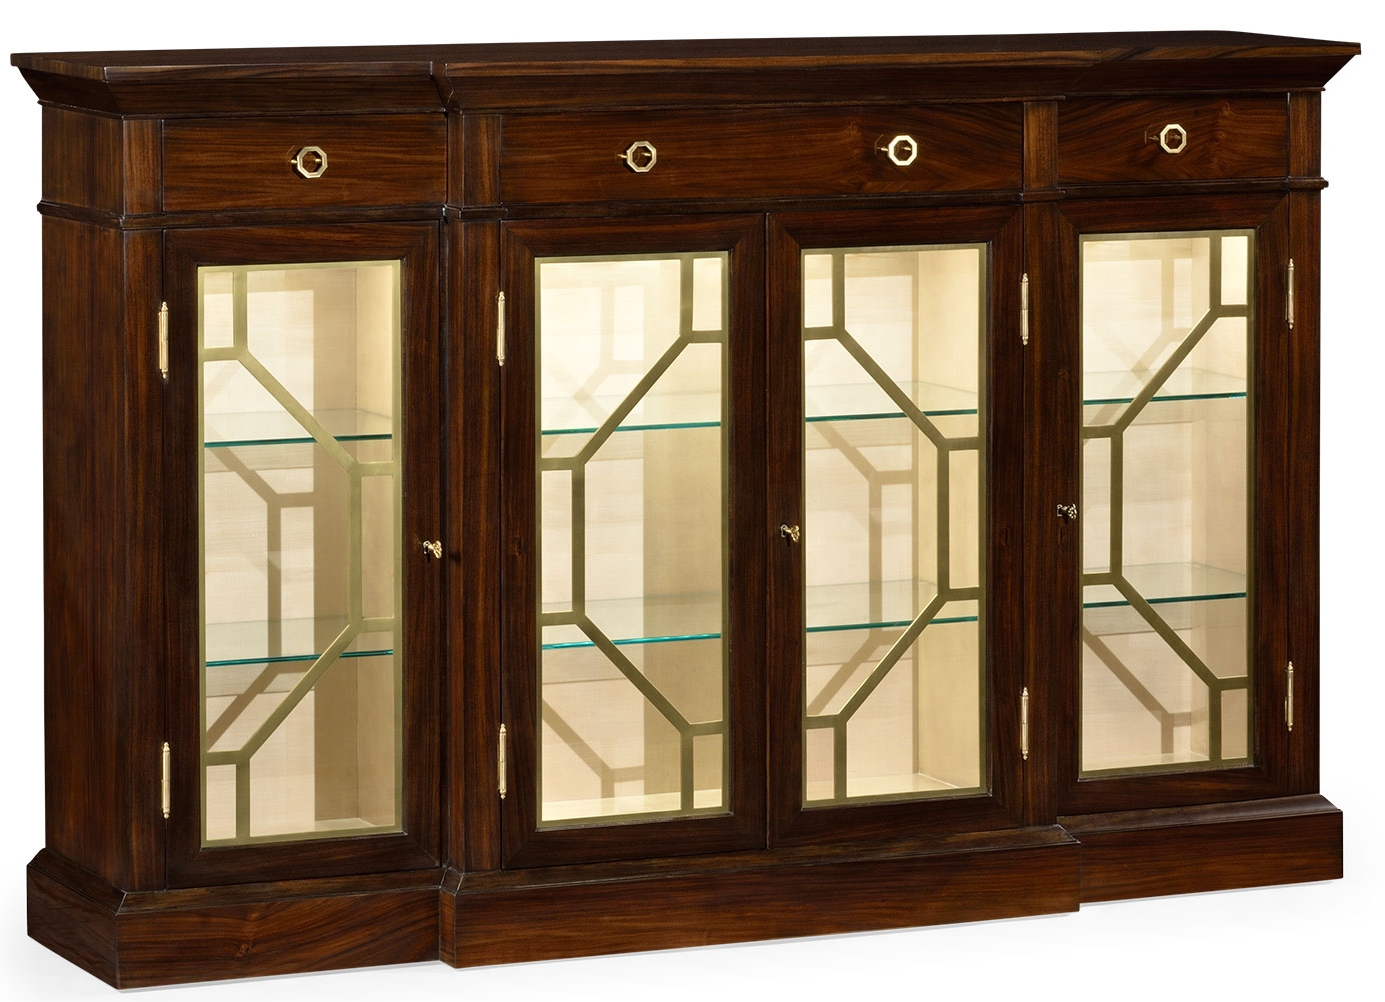 4 Door Display Cabinet